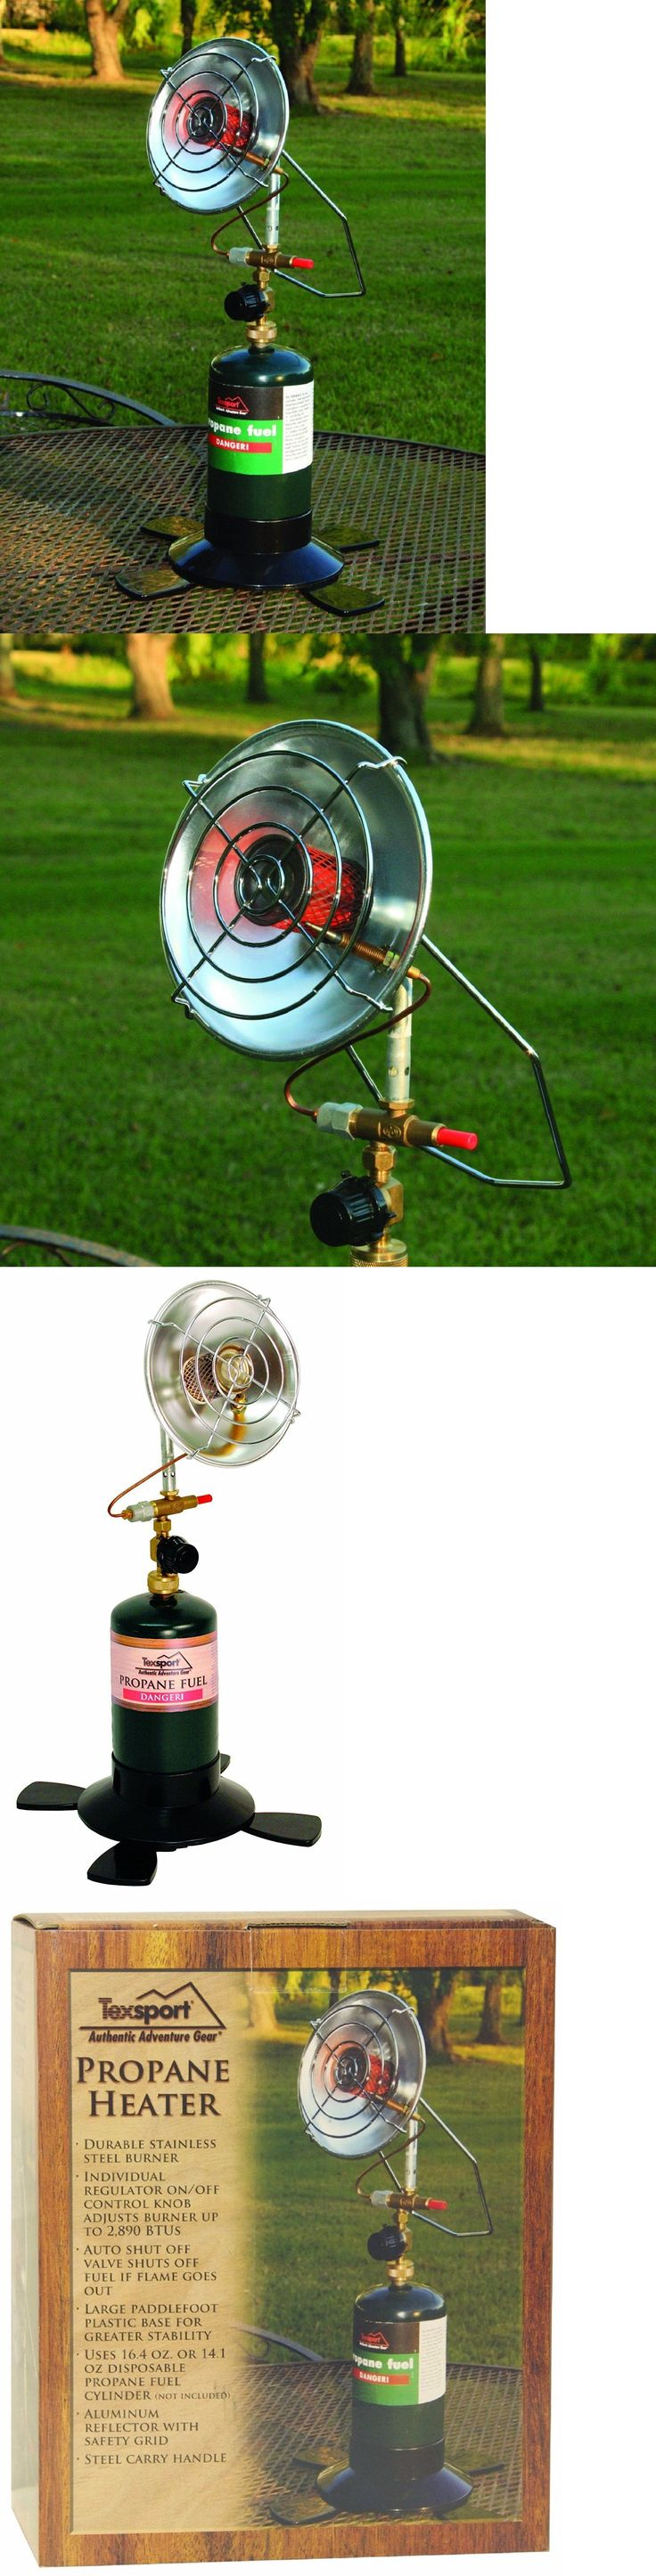 Generators and Heaters 16039: Portable Golf Cart Propane Heater Outdoor Burner On Off Control Knob 2890 Btus -> BUY IT NOW ONLY: $44.98 on eBay!